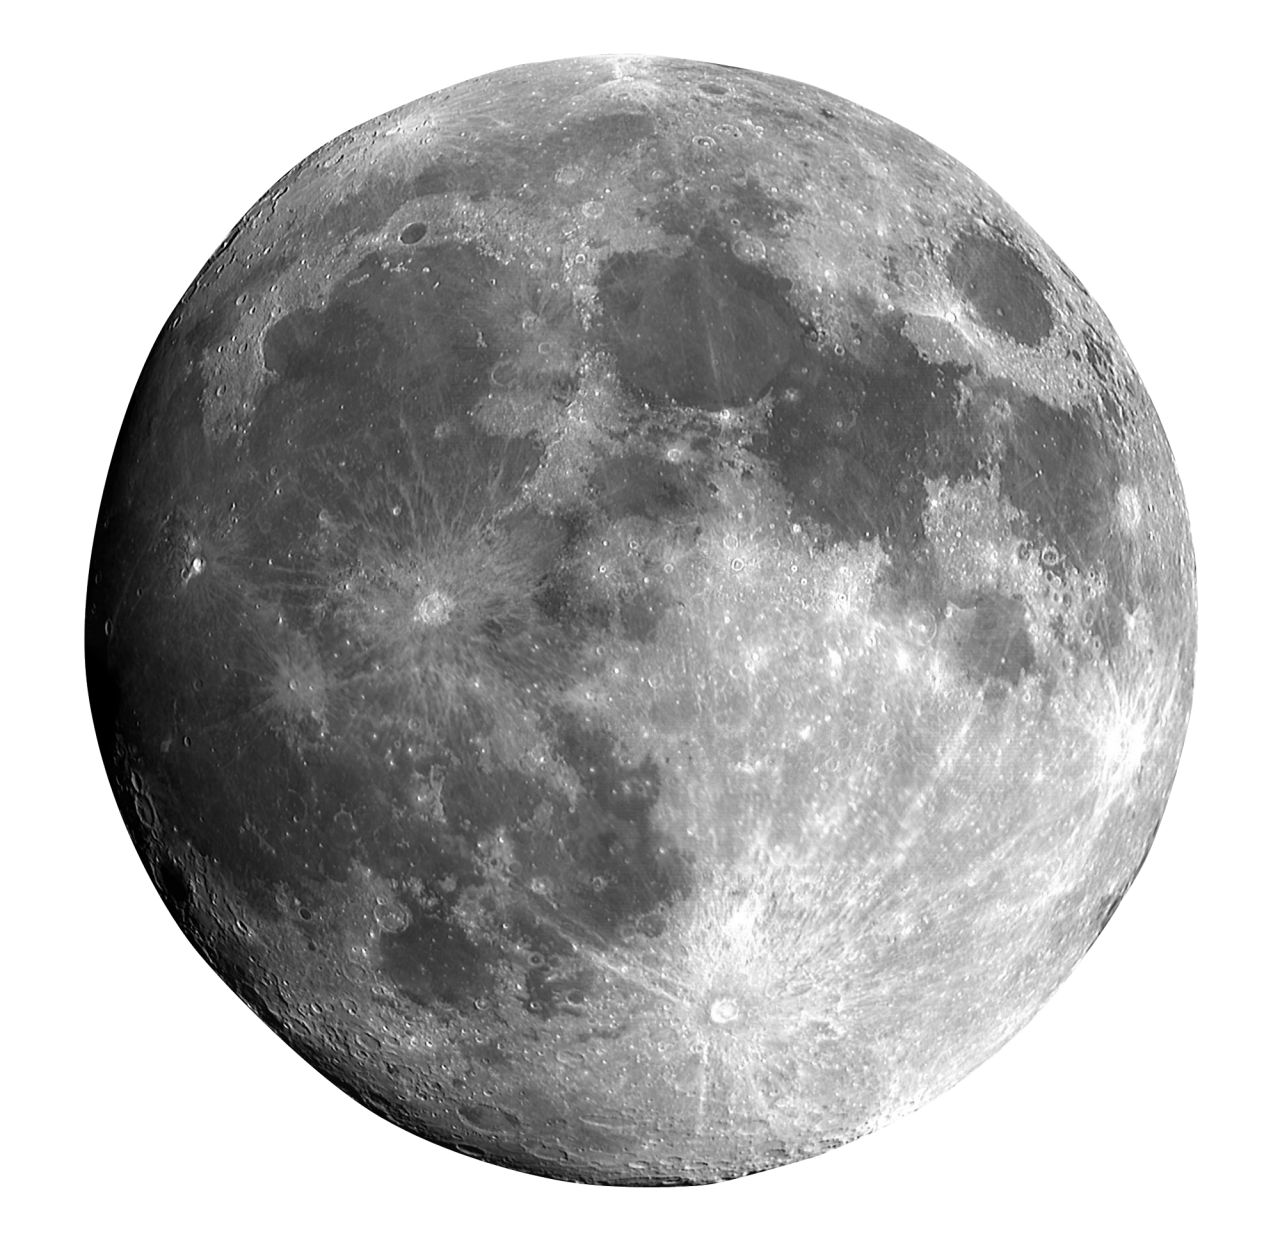 Black and white Moon PNG Image - PurePNG | Free ...